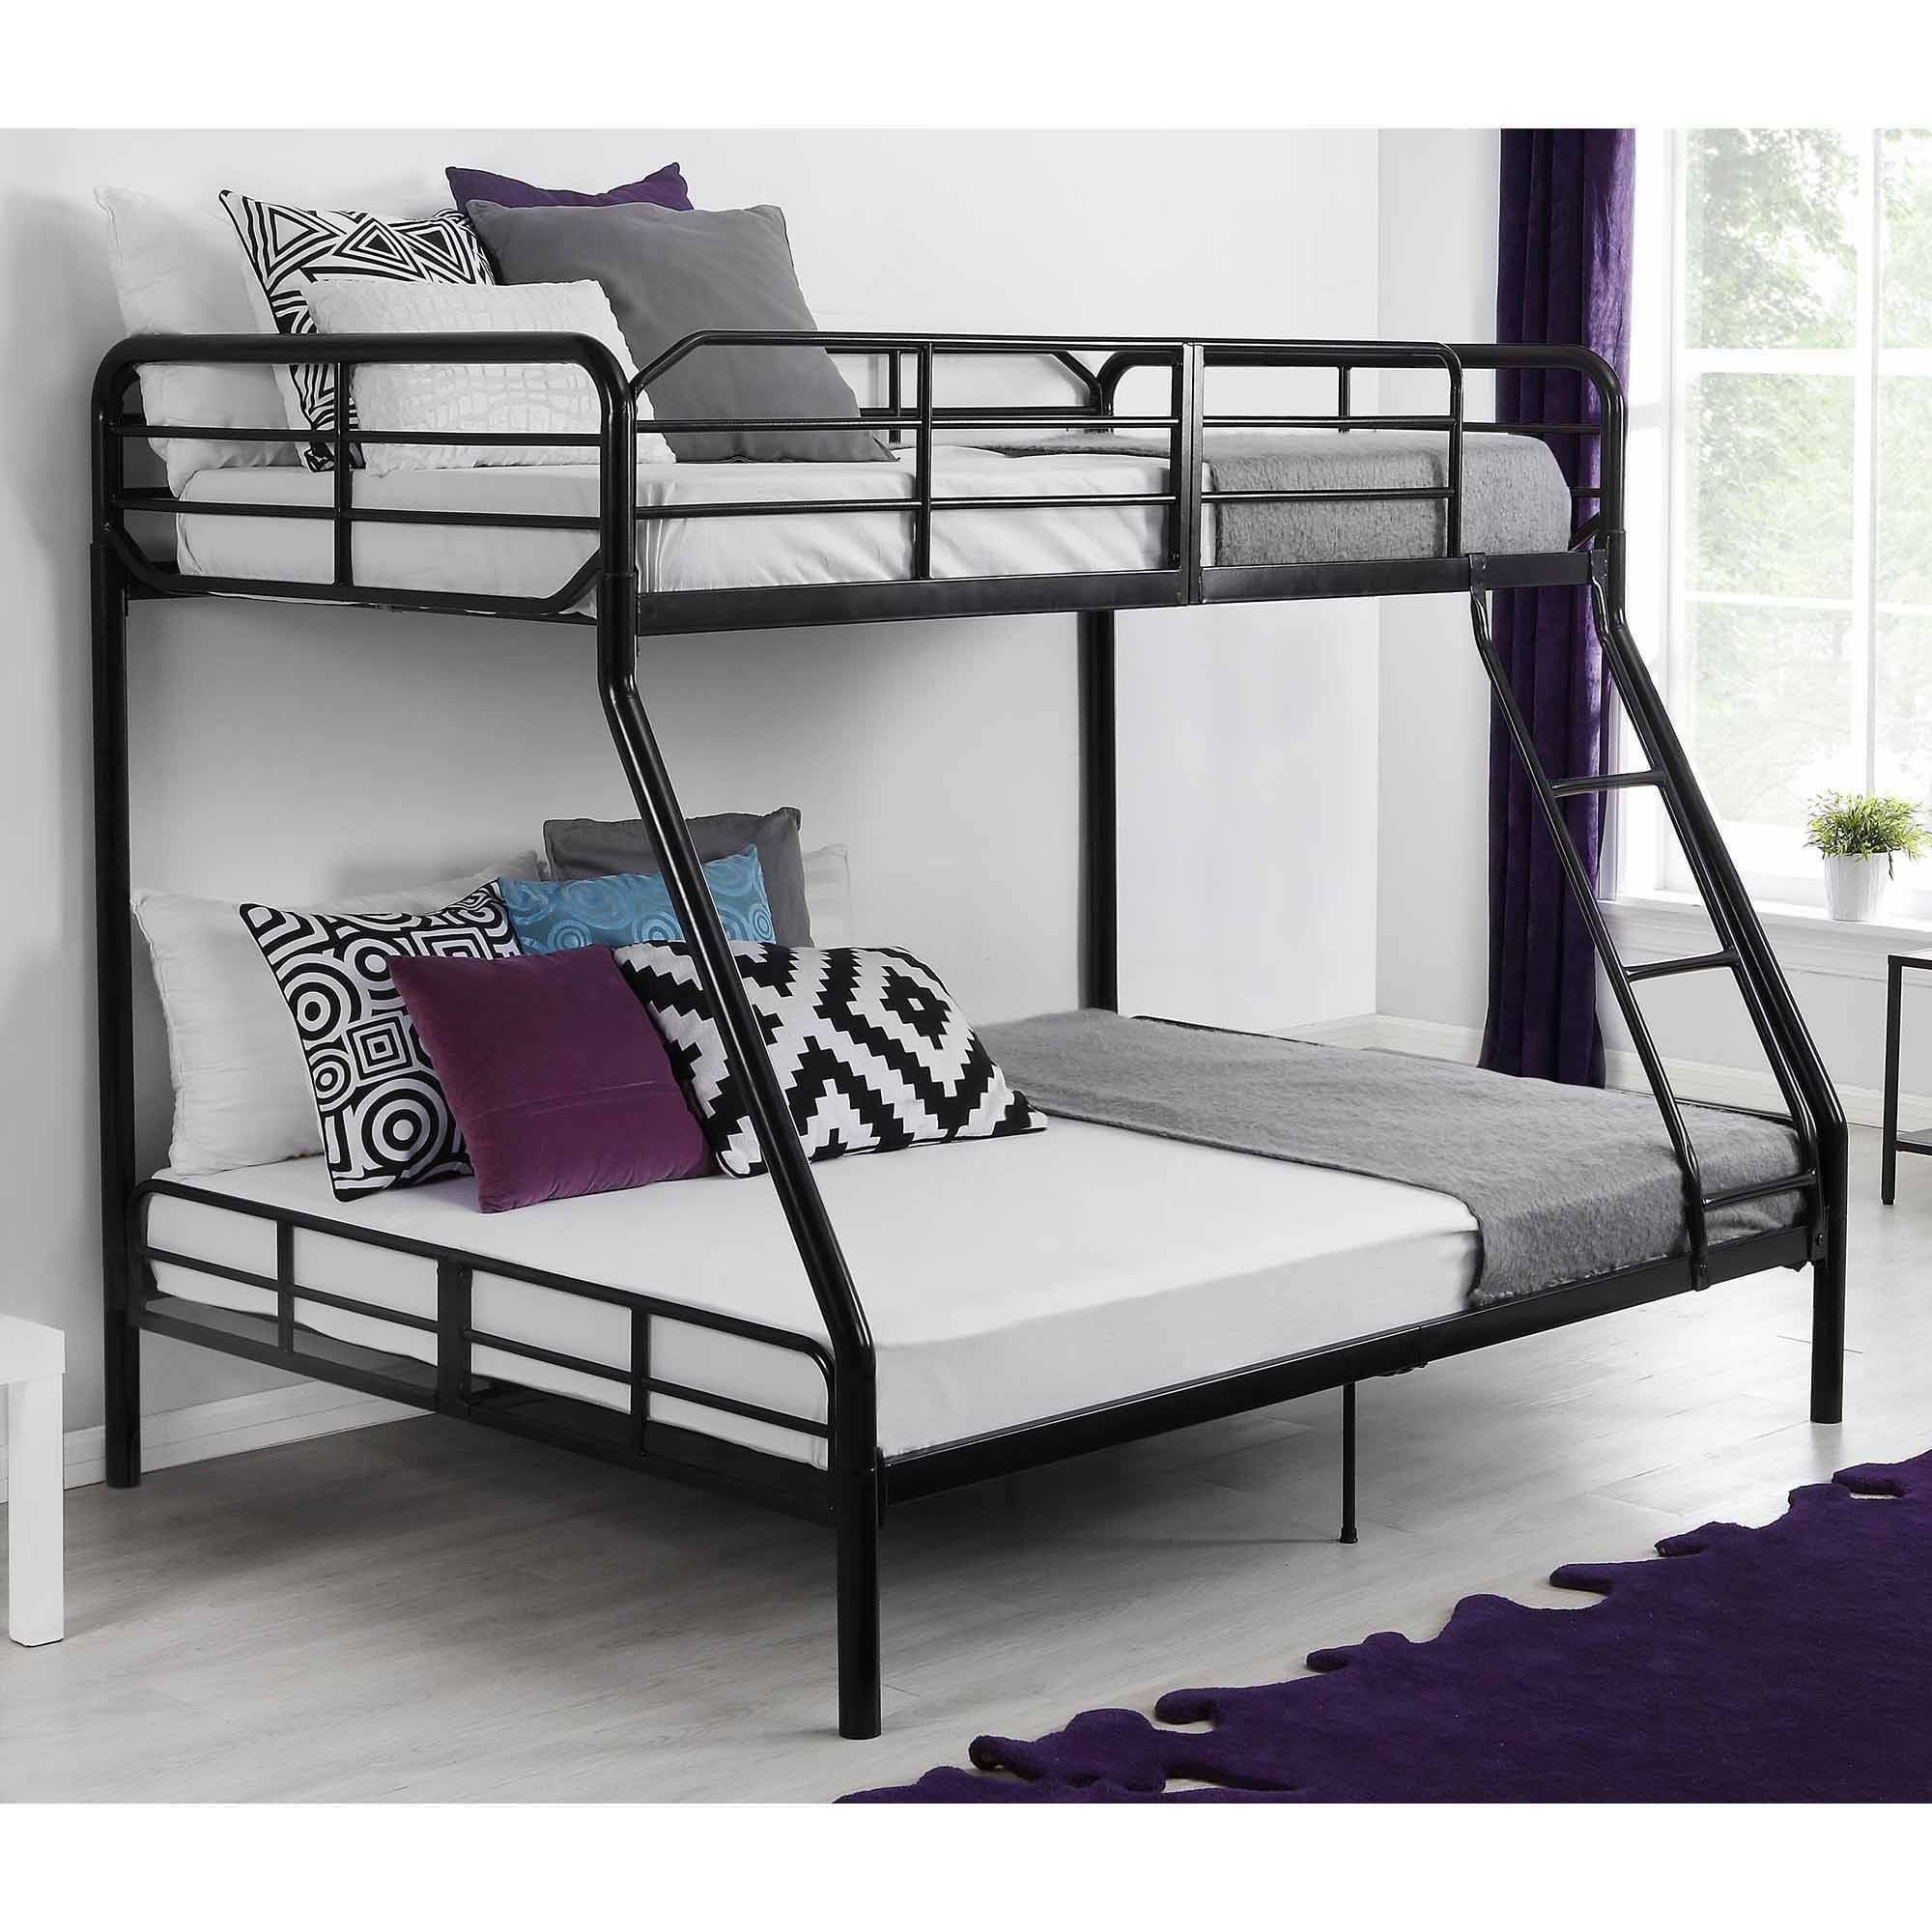 Mainstays Twin Over Full Metal Sturdy Bunk Bed Black Walmart Com Walmart Com